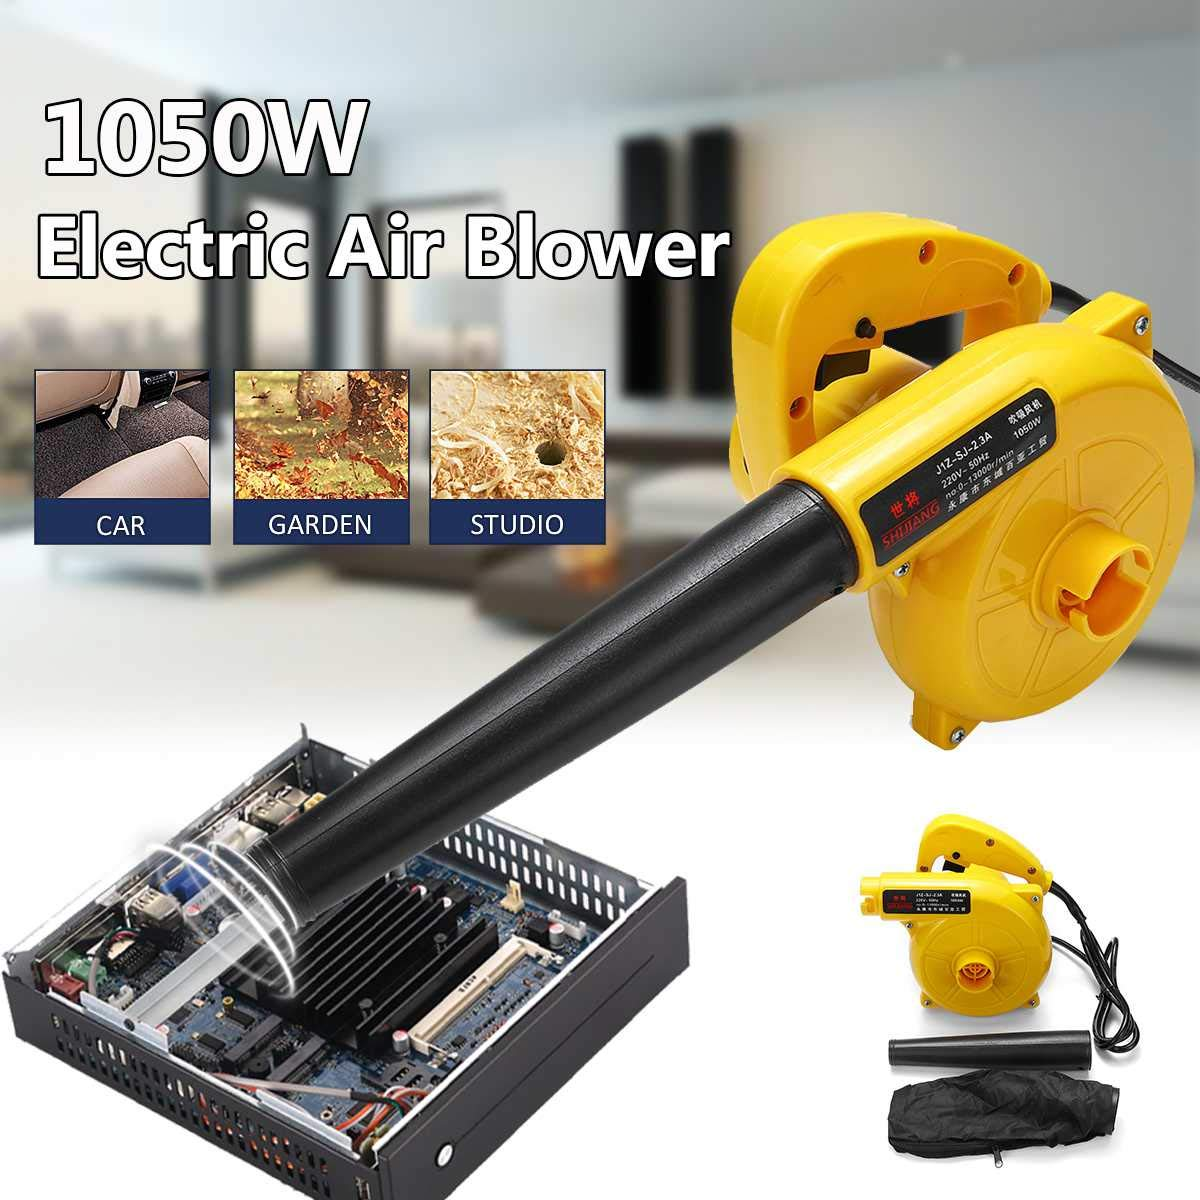 JohnnyBui - Portable Air Blower Computer Cleaning Electric Dust Removal Handheld Air Blower Cleaner for Leaf Dust Computer Furniture Car